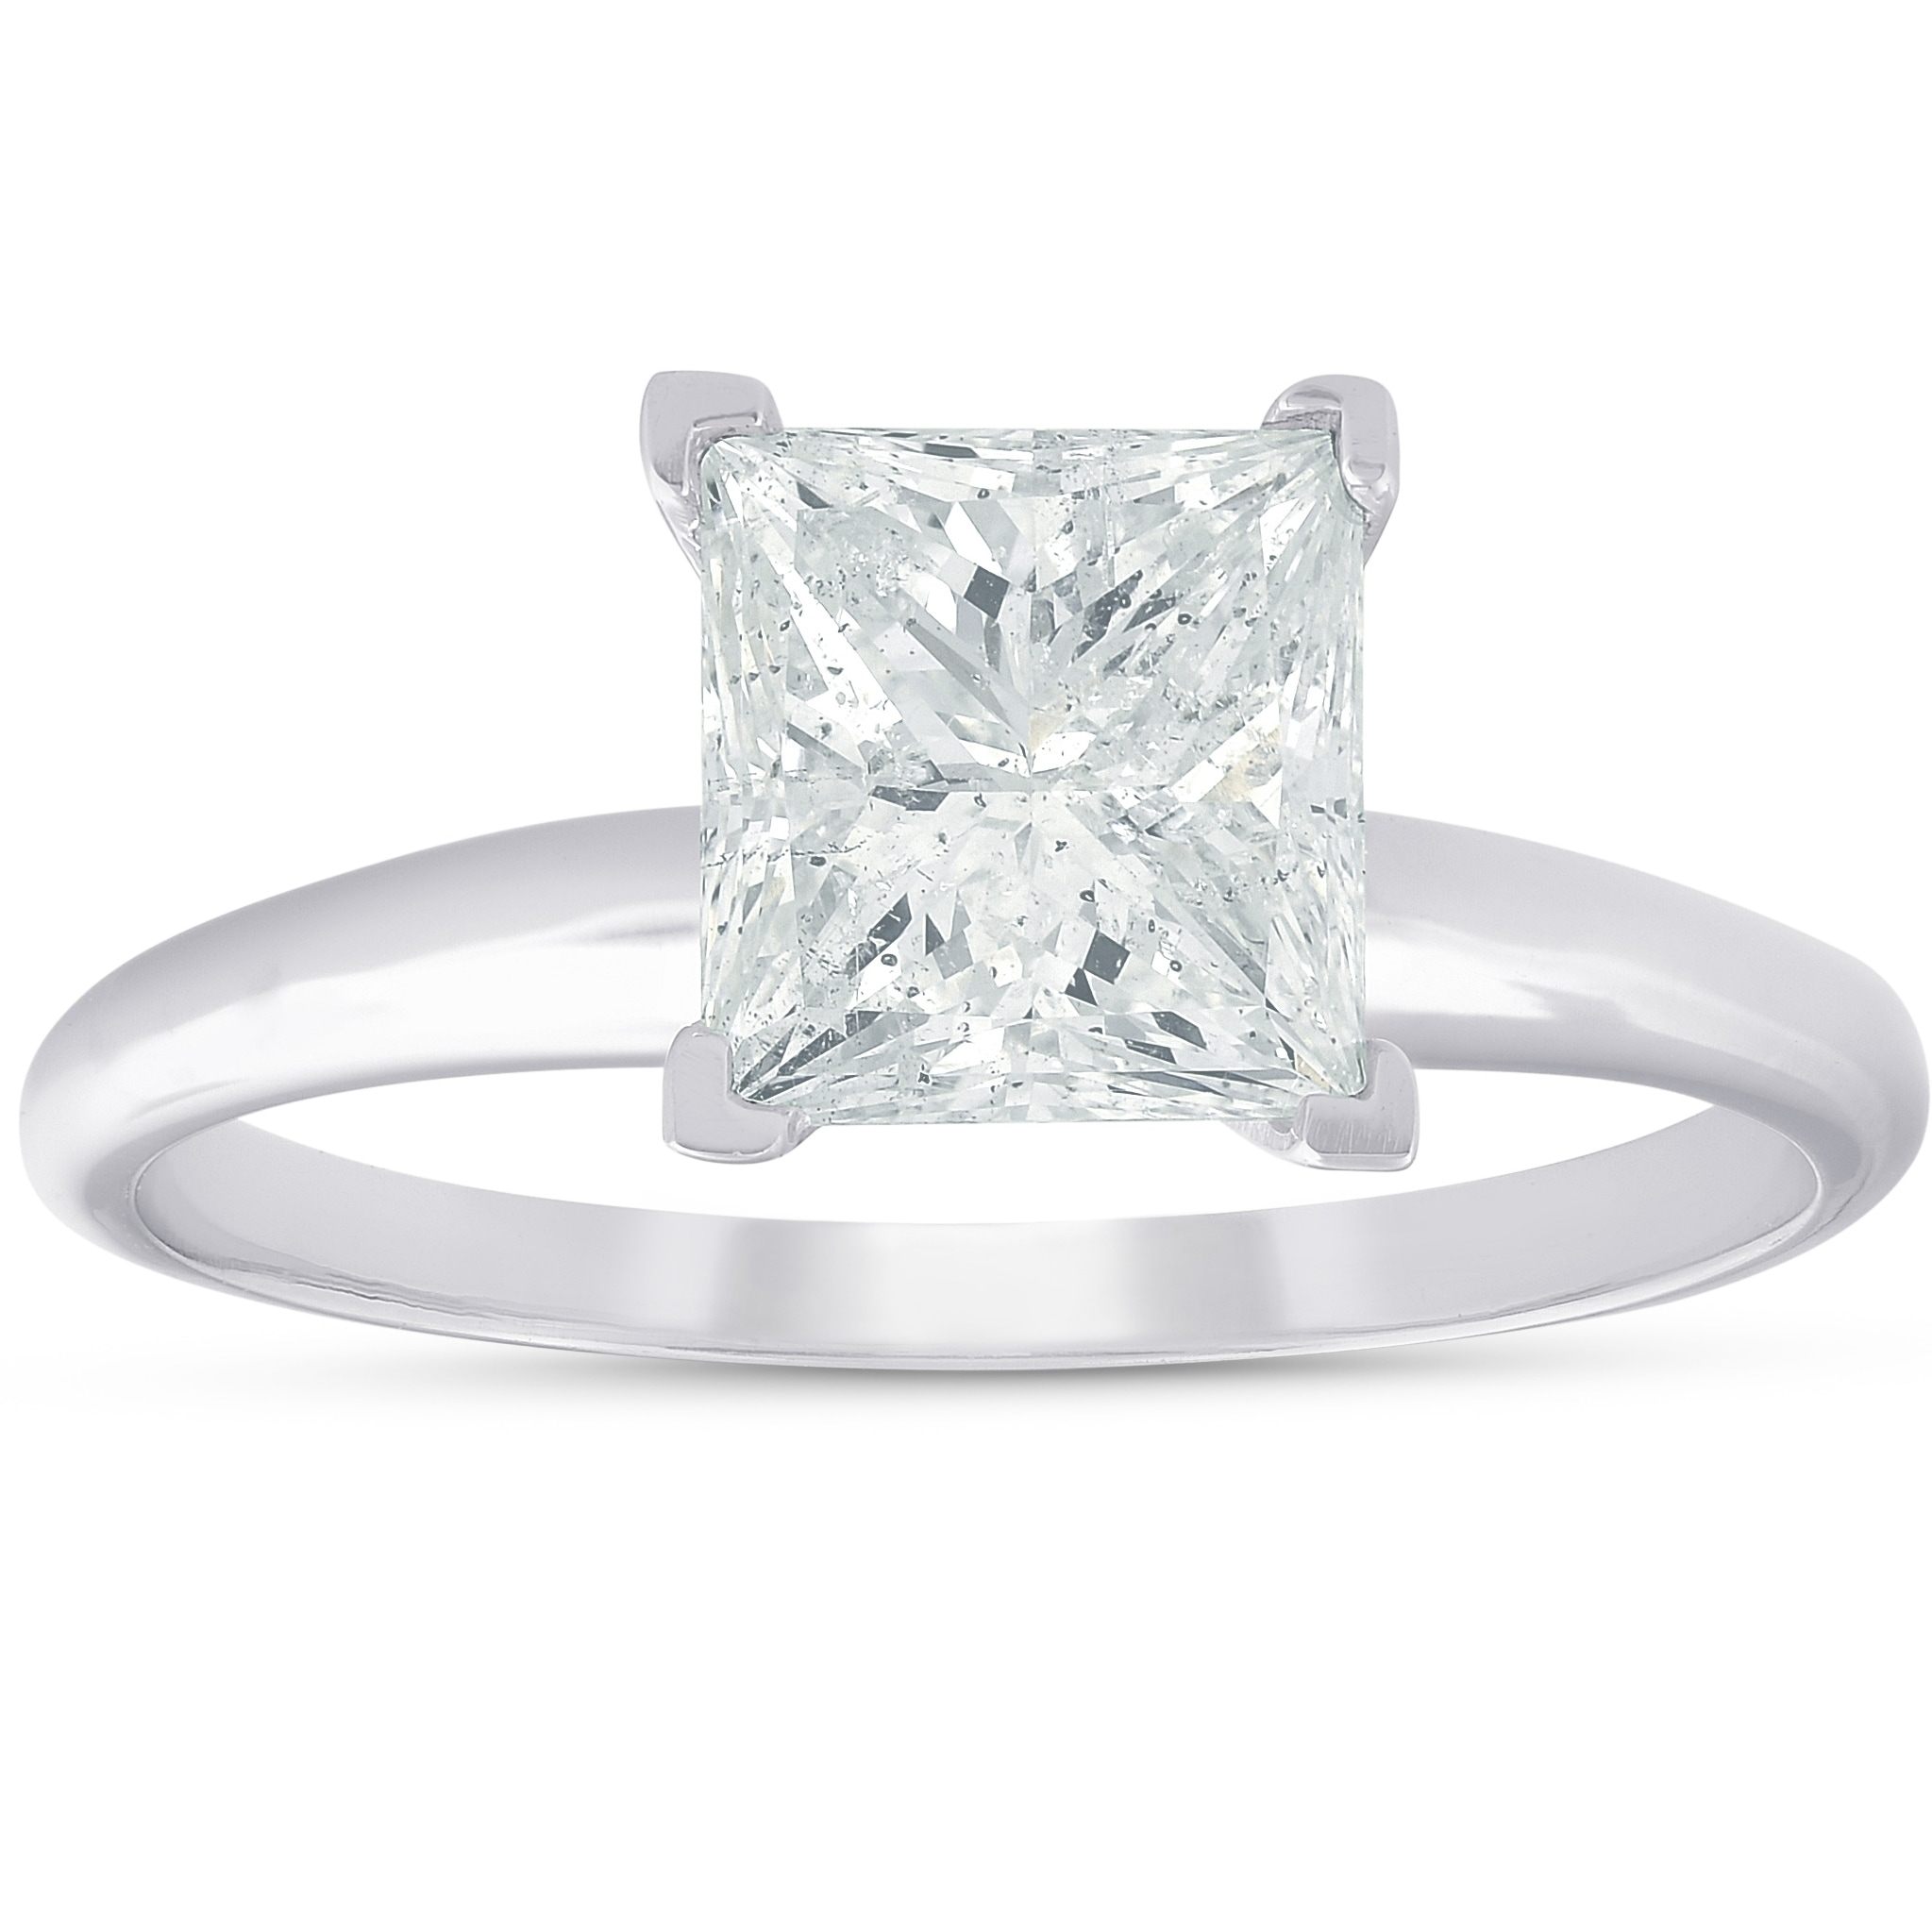 Shop Pompeii3 14k White Gold 2 03ct Princess Square Cut Diamond Solitaire Engagement Ring Clarity Enhanced On Sale Overstock 23586024